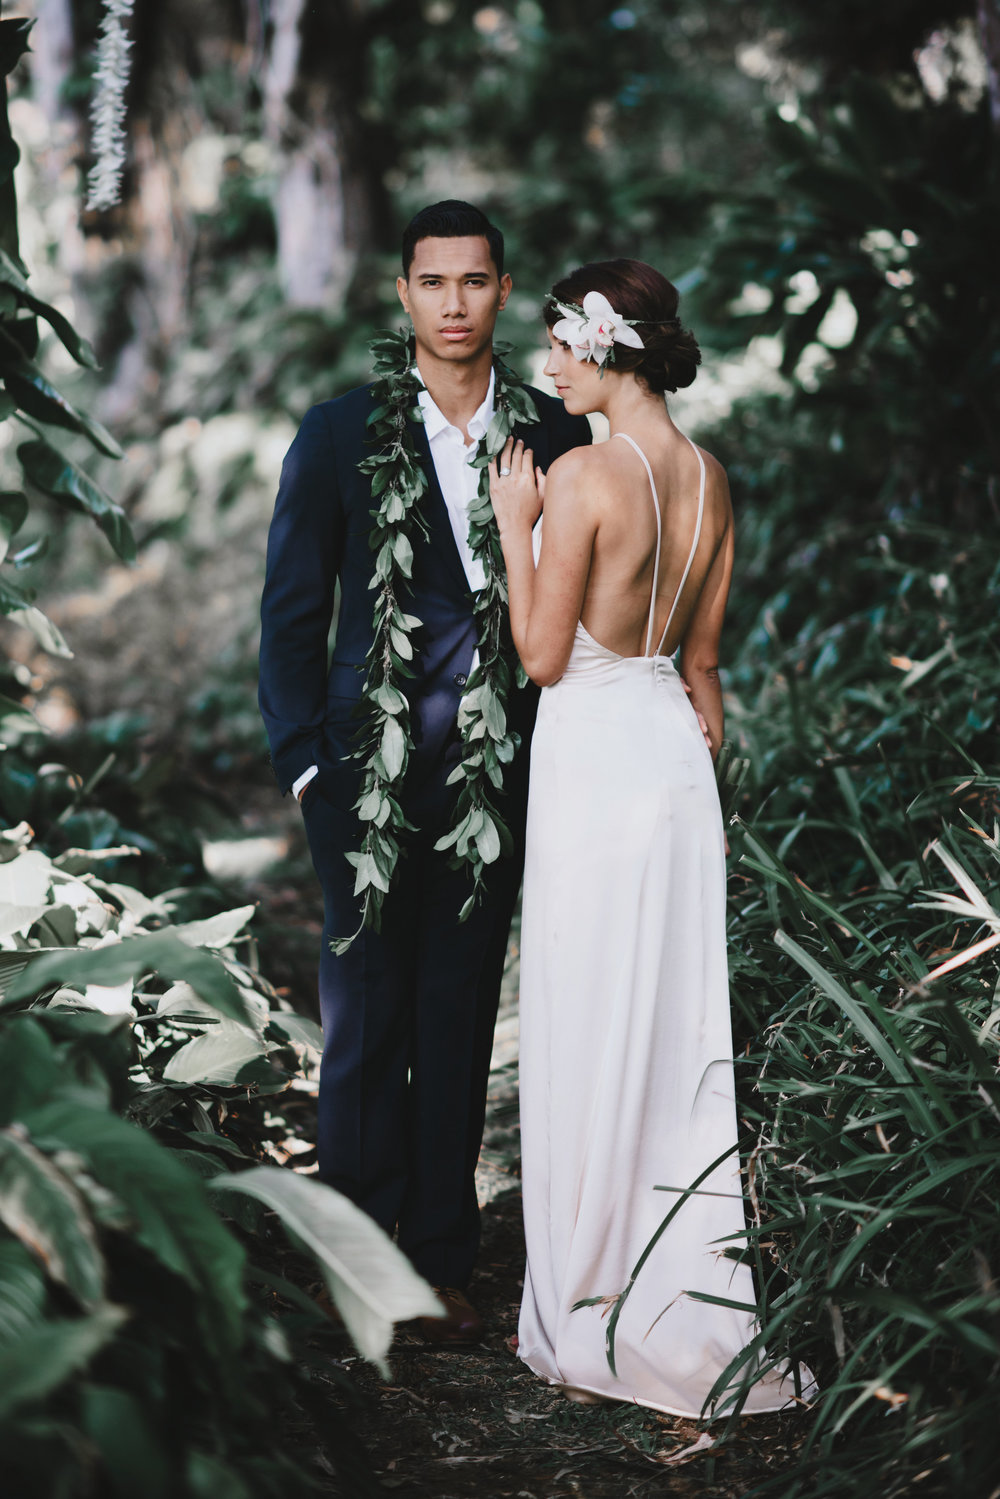 VSCO_Hawaii_Wedding_Photography_June_Cochran_146_6937.jpg